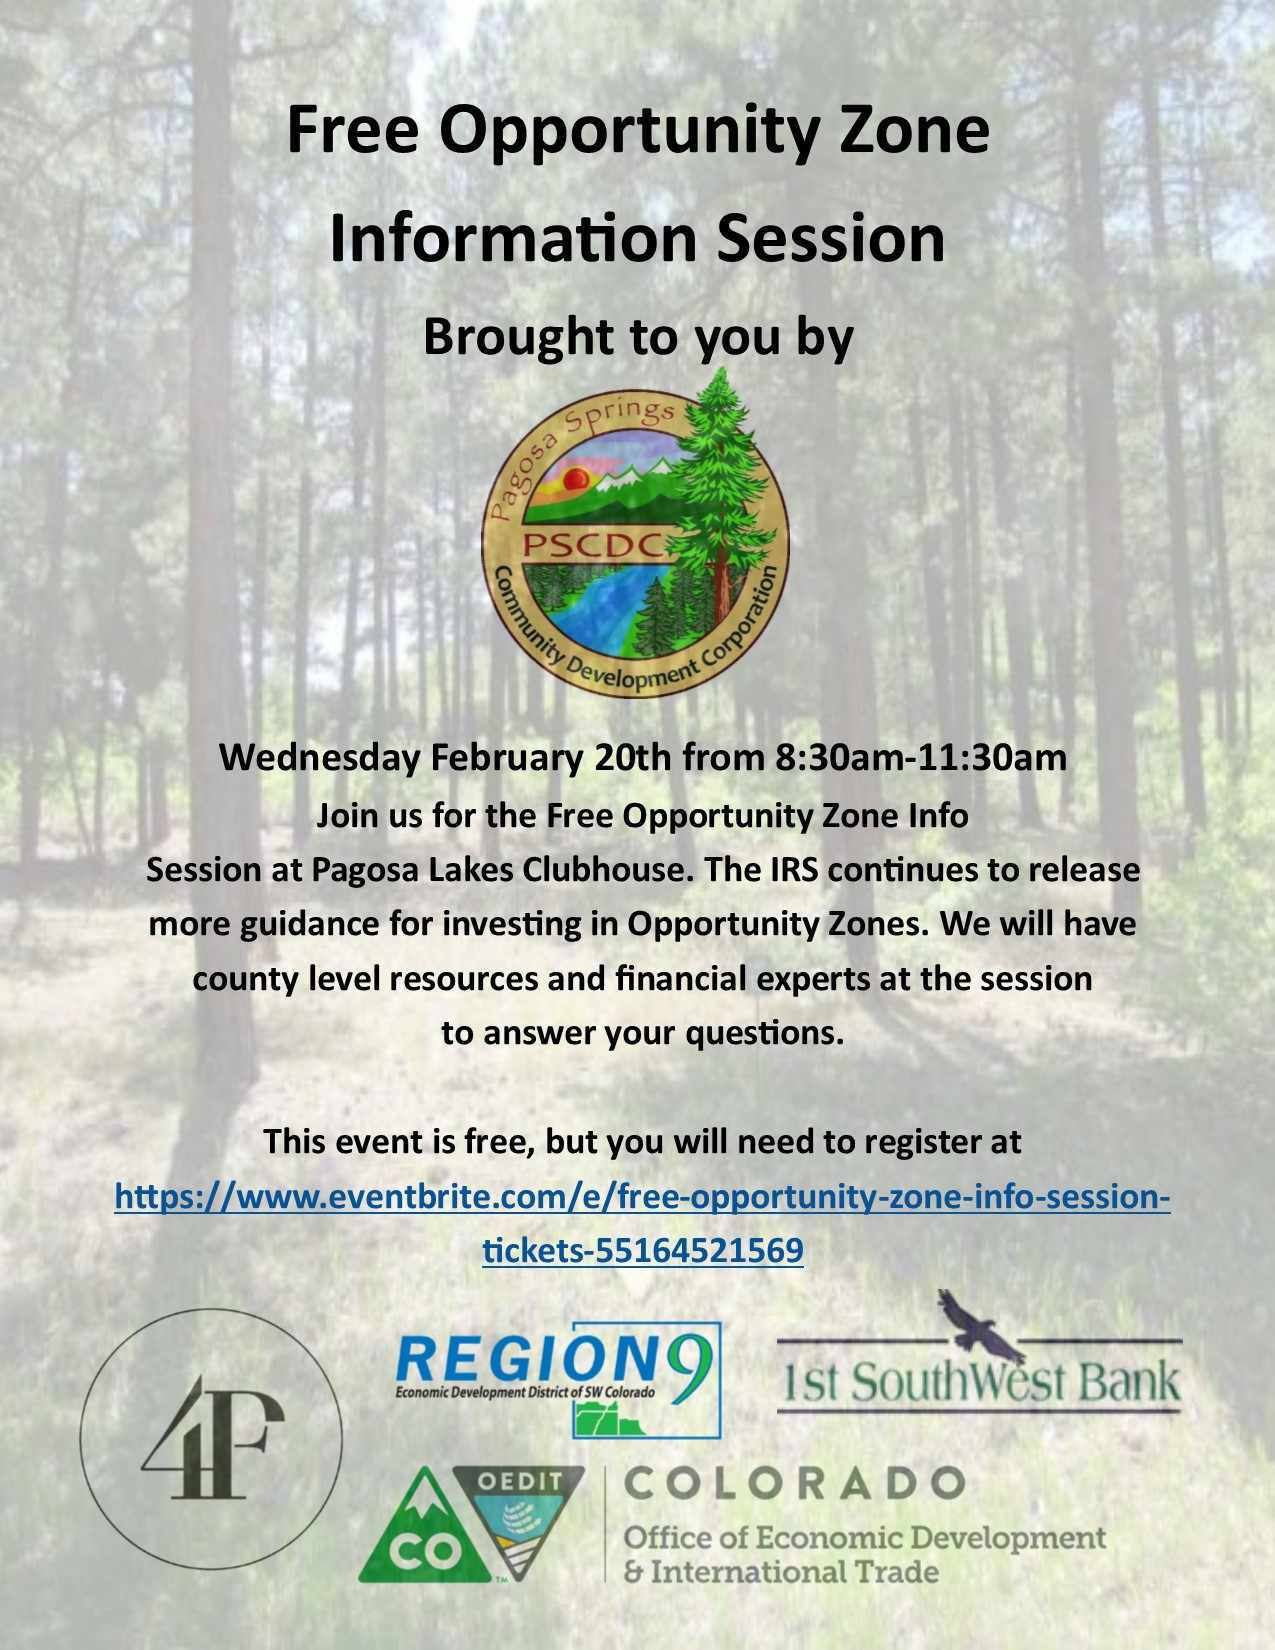 Free Opportunity Zone Information Session